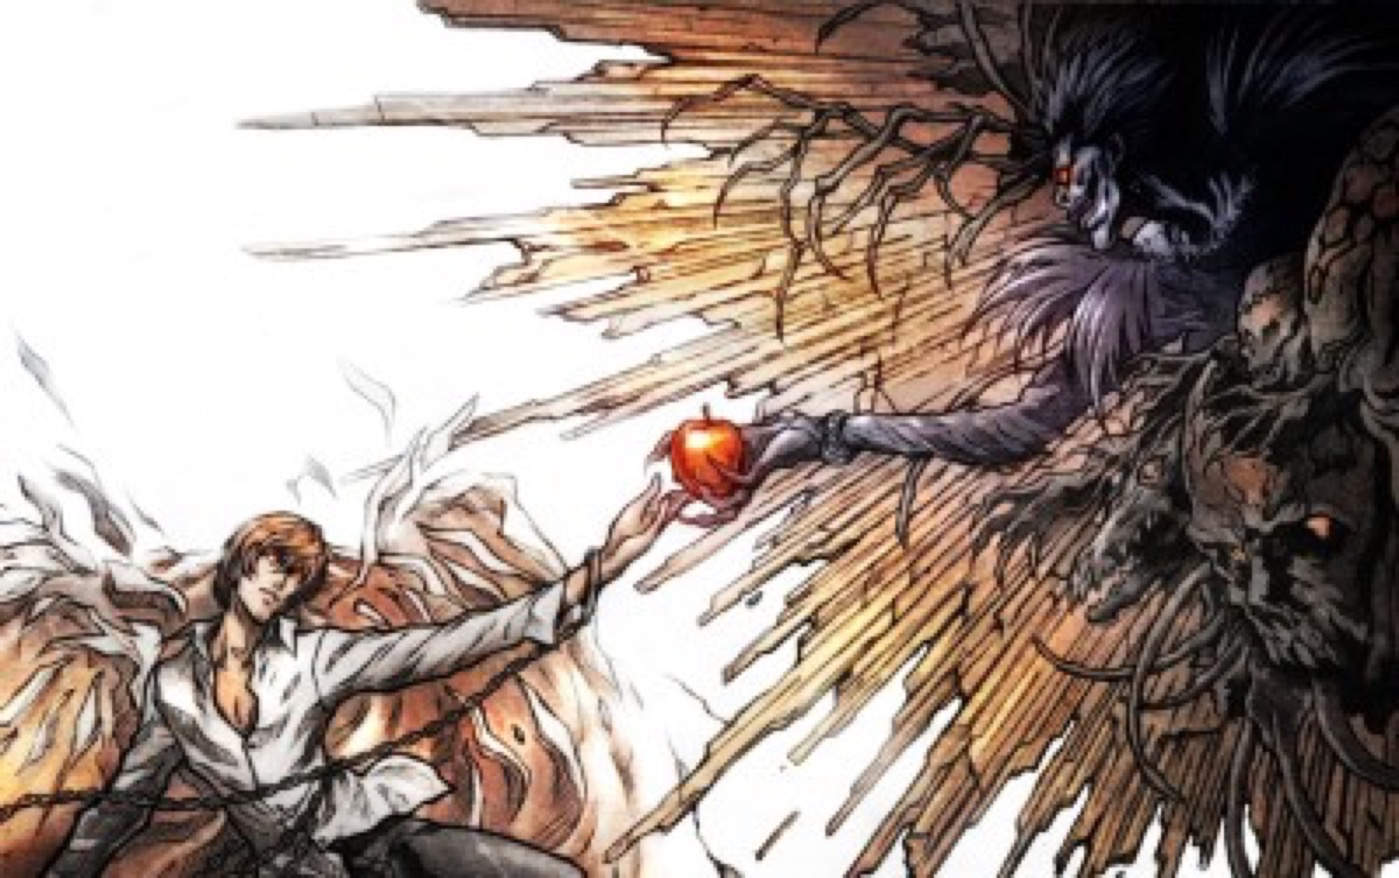 death_note_ryuk_yagami_light_apples_desktop_2229x1_by_gelatin95-d5sjwrs